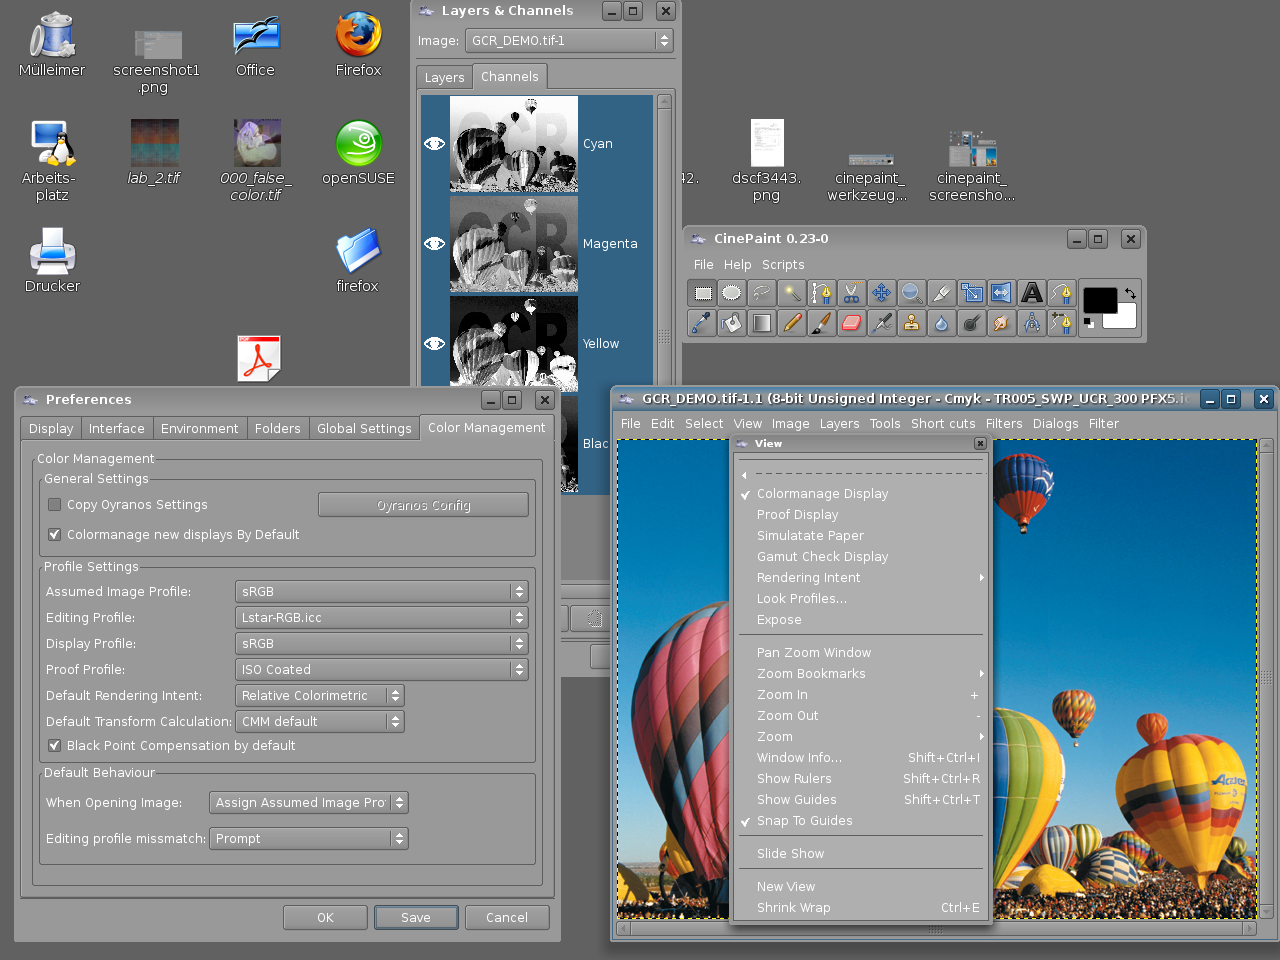 Image:Cinepaint screenshot 0.23 en.png